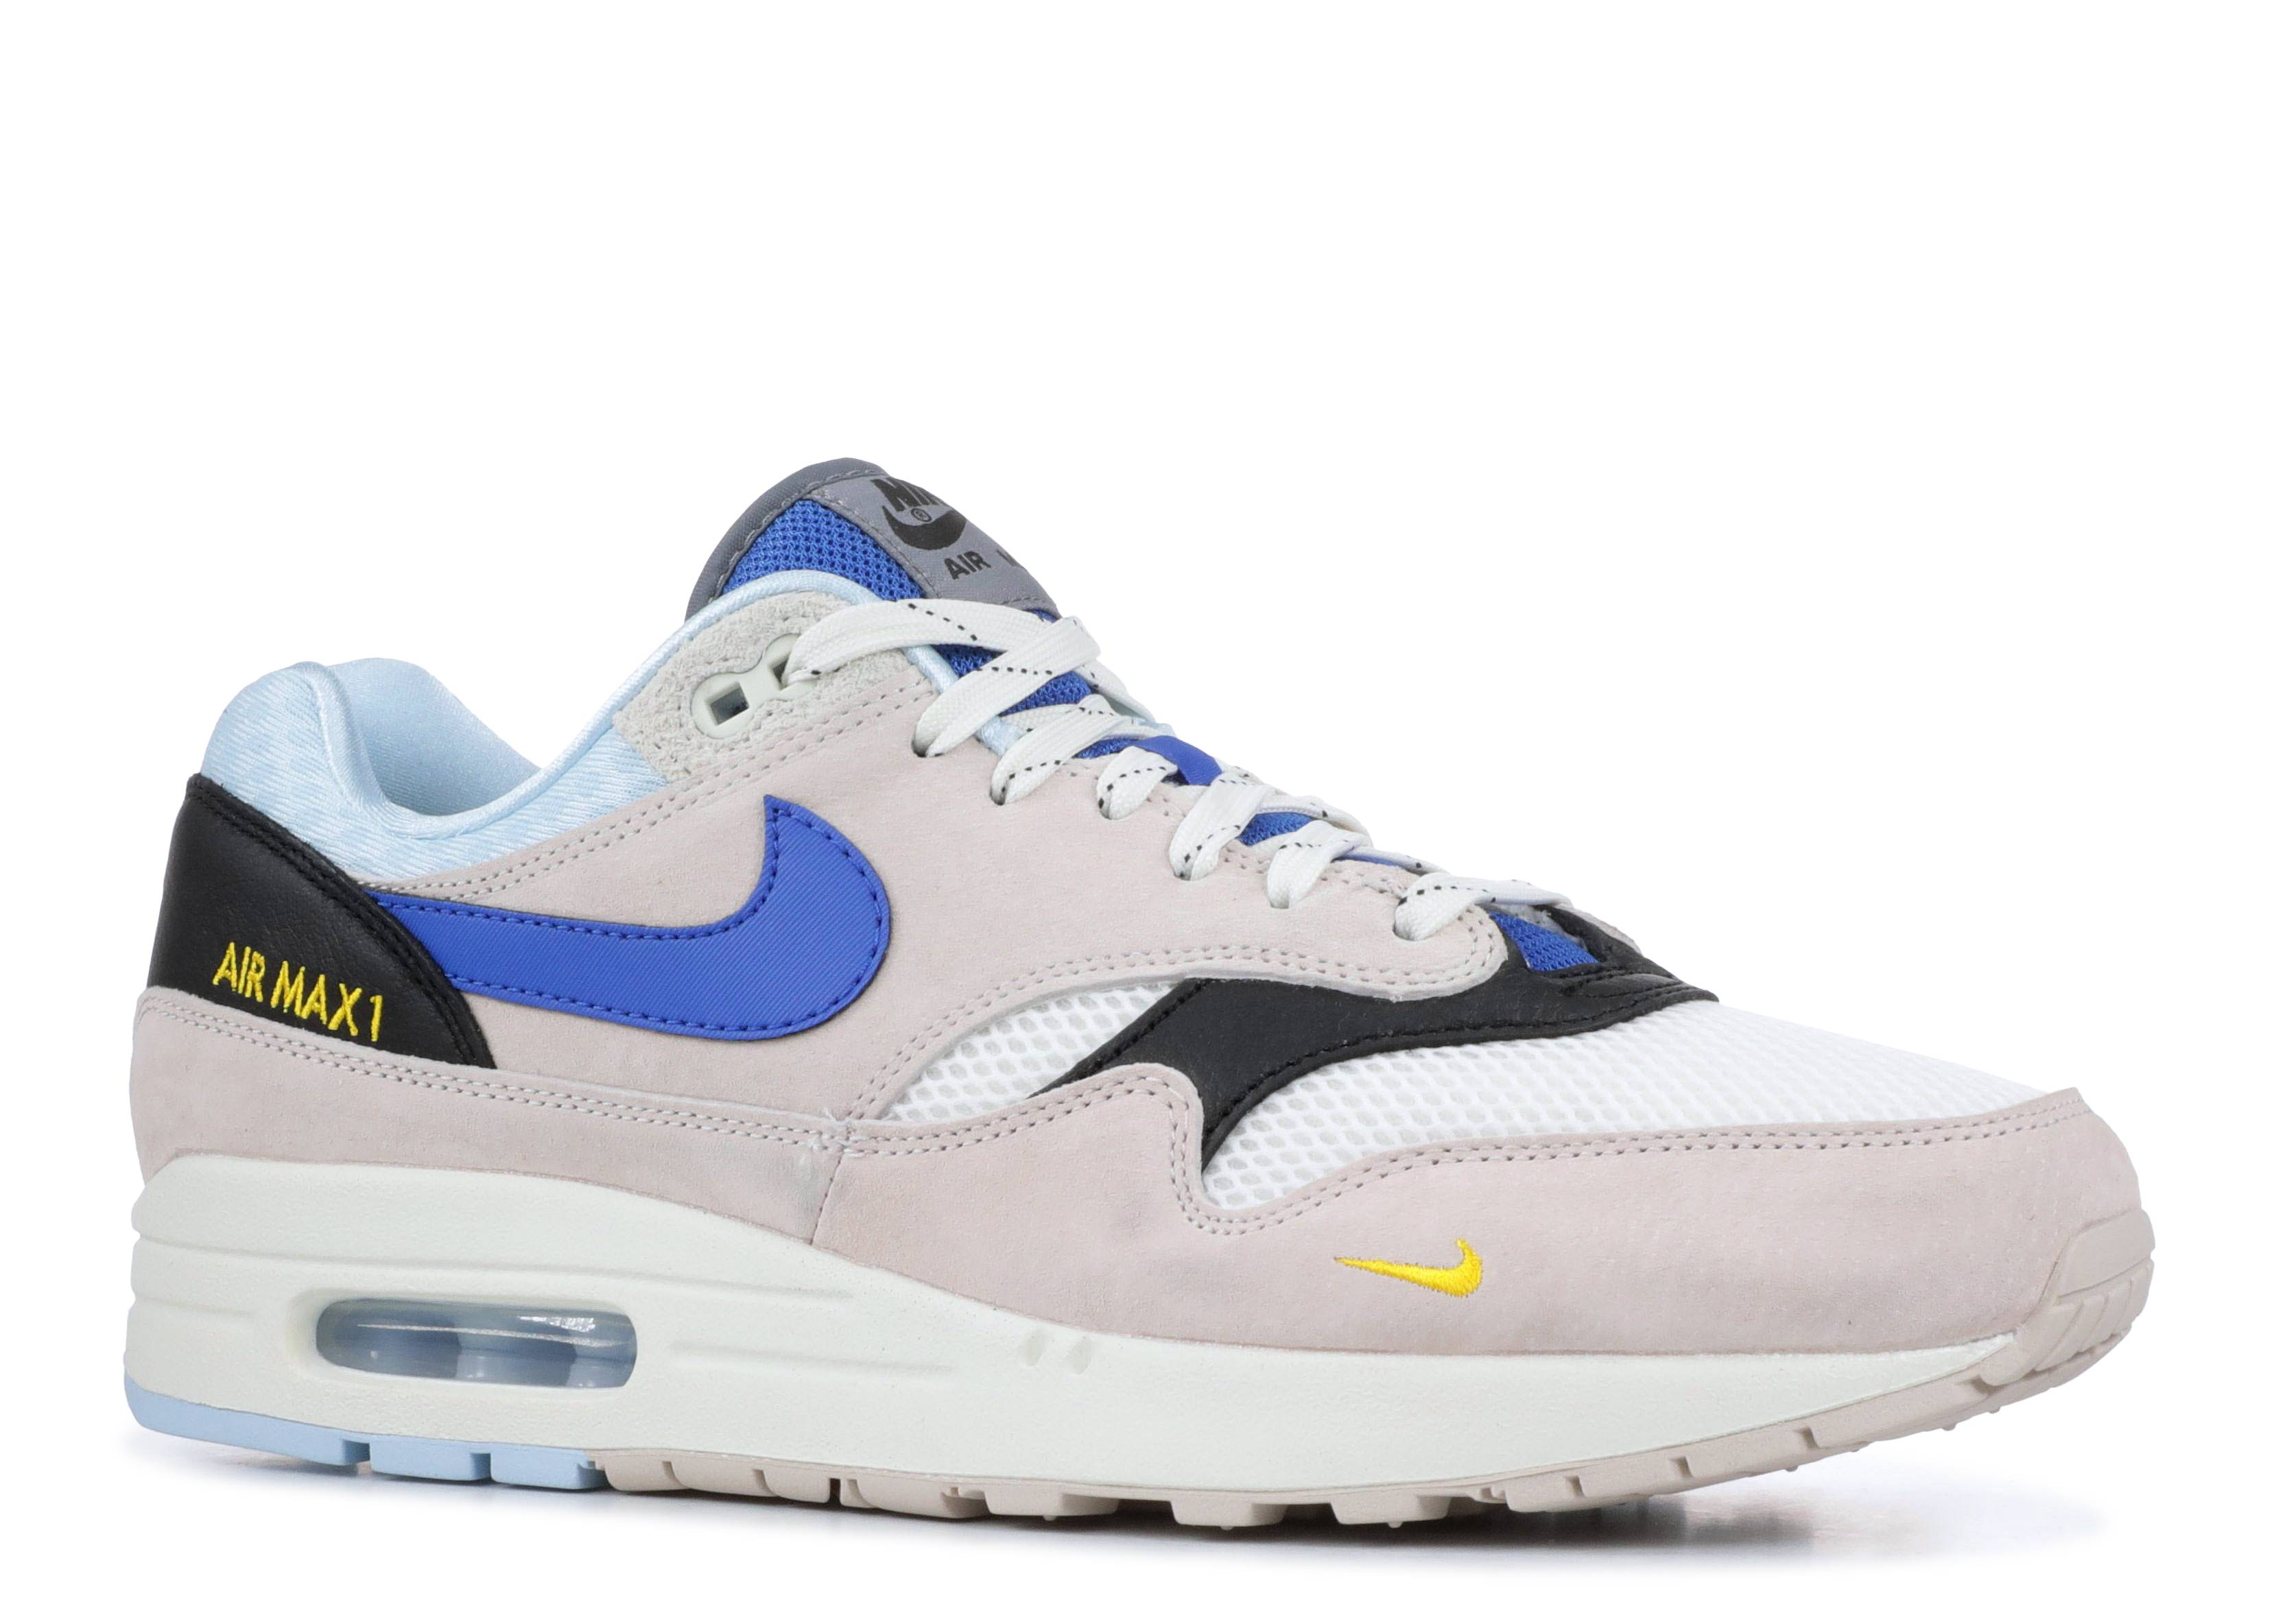 Men's Nike Air Max 1 We Dawn AV5188 001 Desert SandRoyal